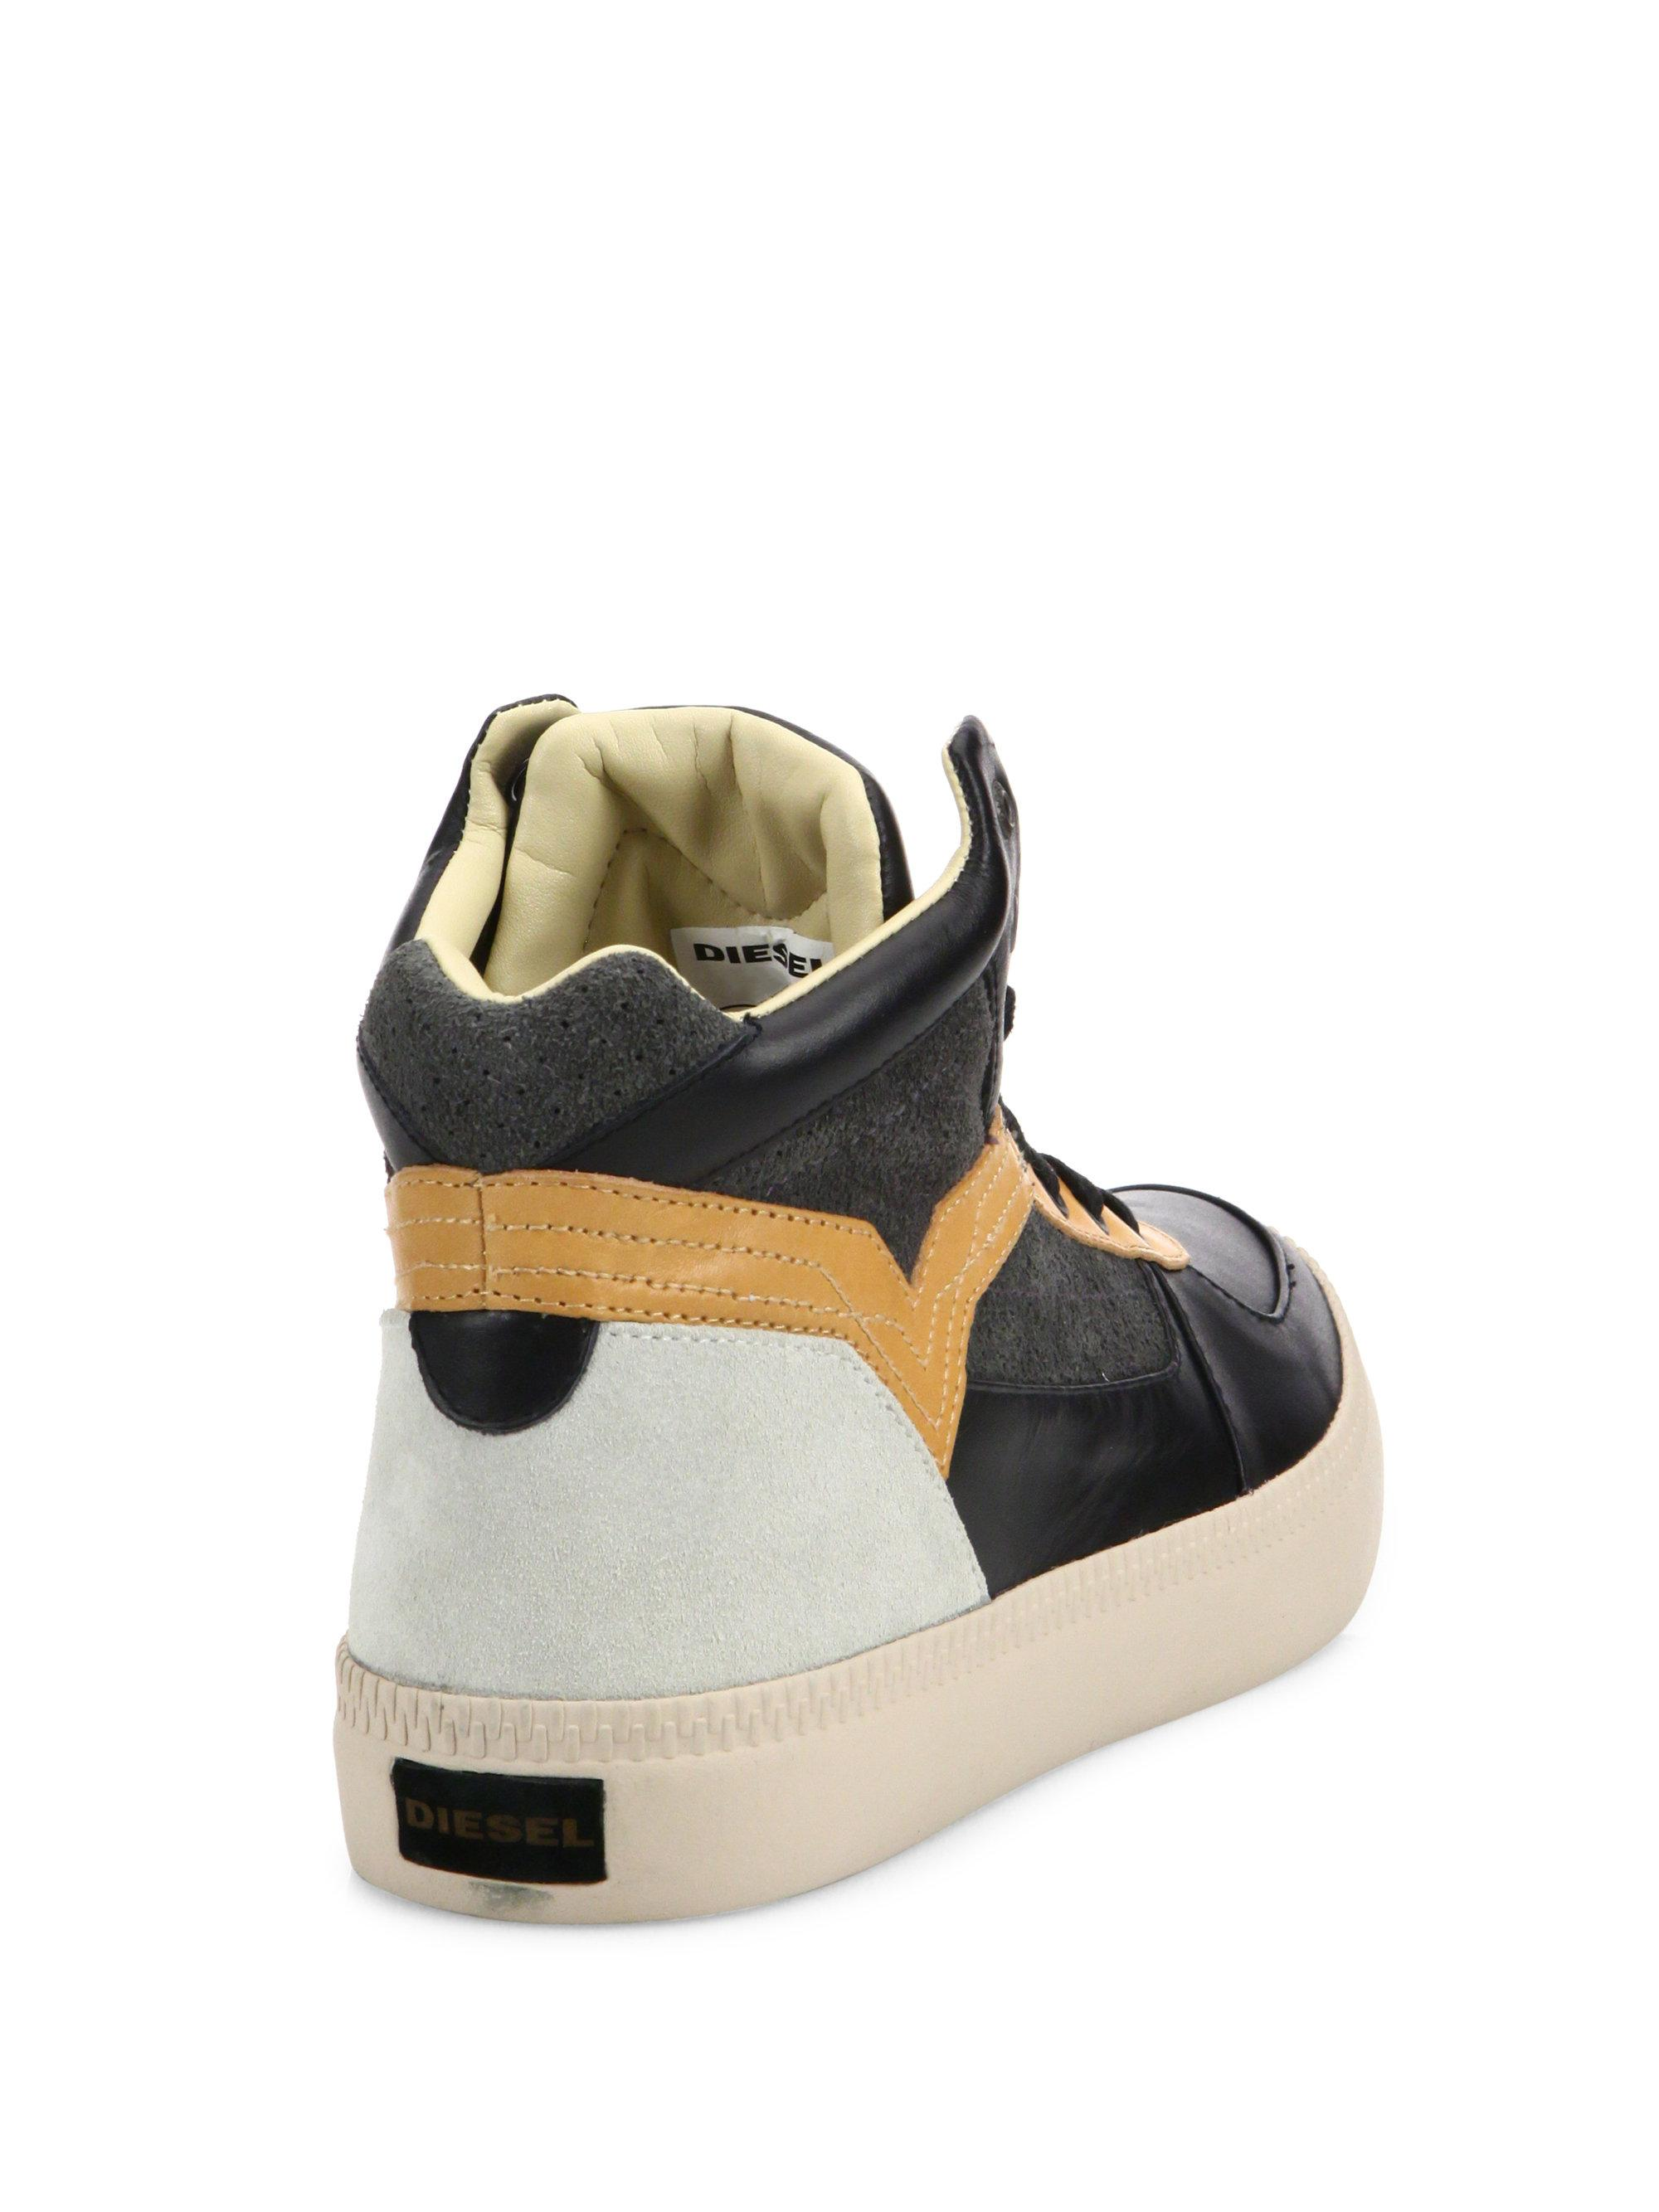 Diesel Spaark High-Top Sneakers 8UdhS84l4